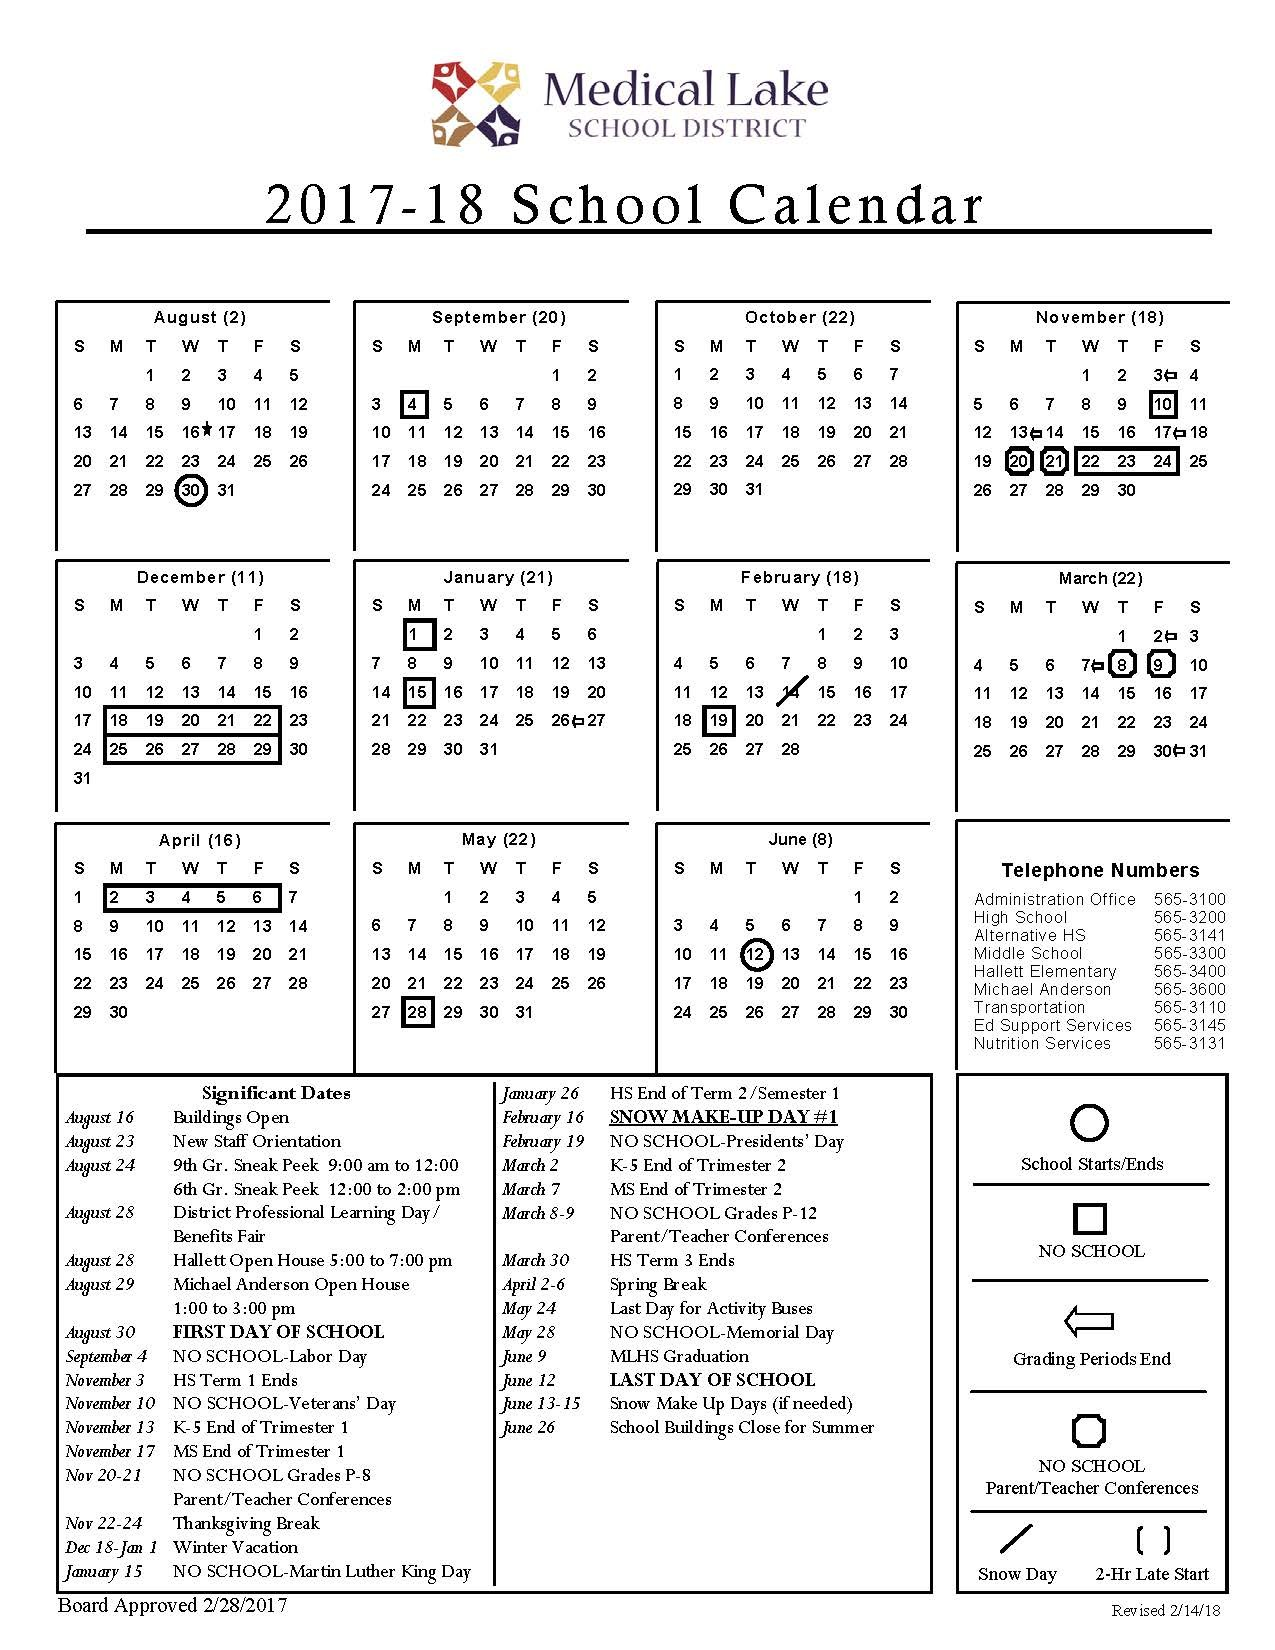 Revised 2017-18 School Year Calendar Reflecting Snow Make-Up Day